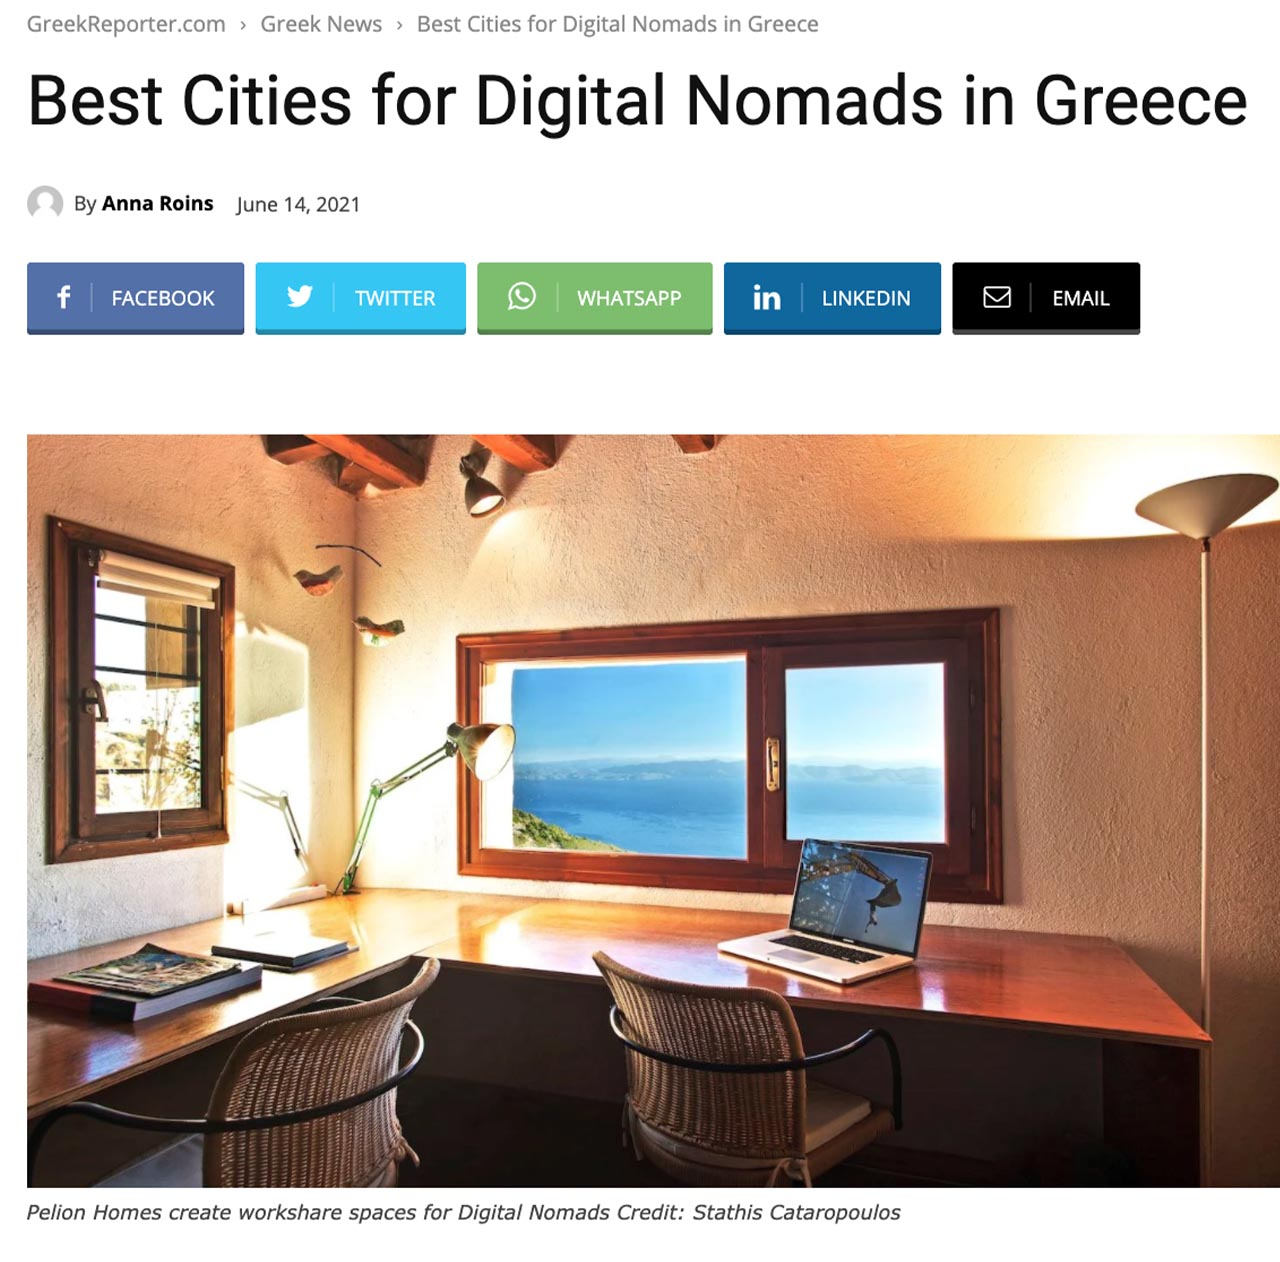 Best Cities for Digital Nomads in Greece